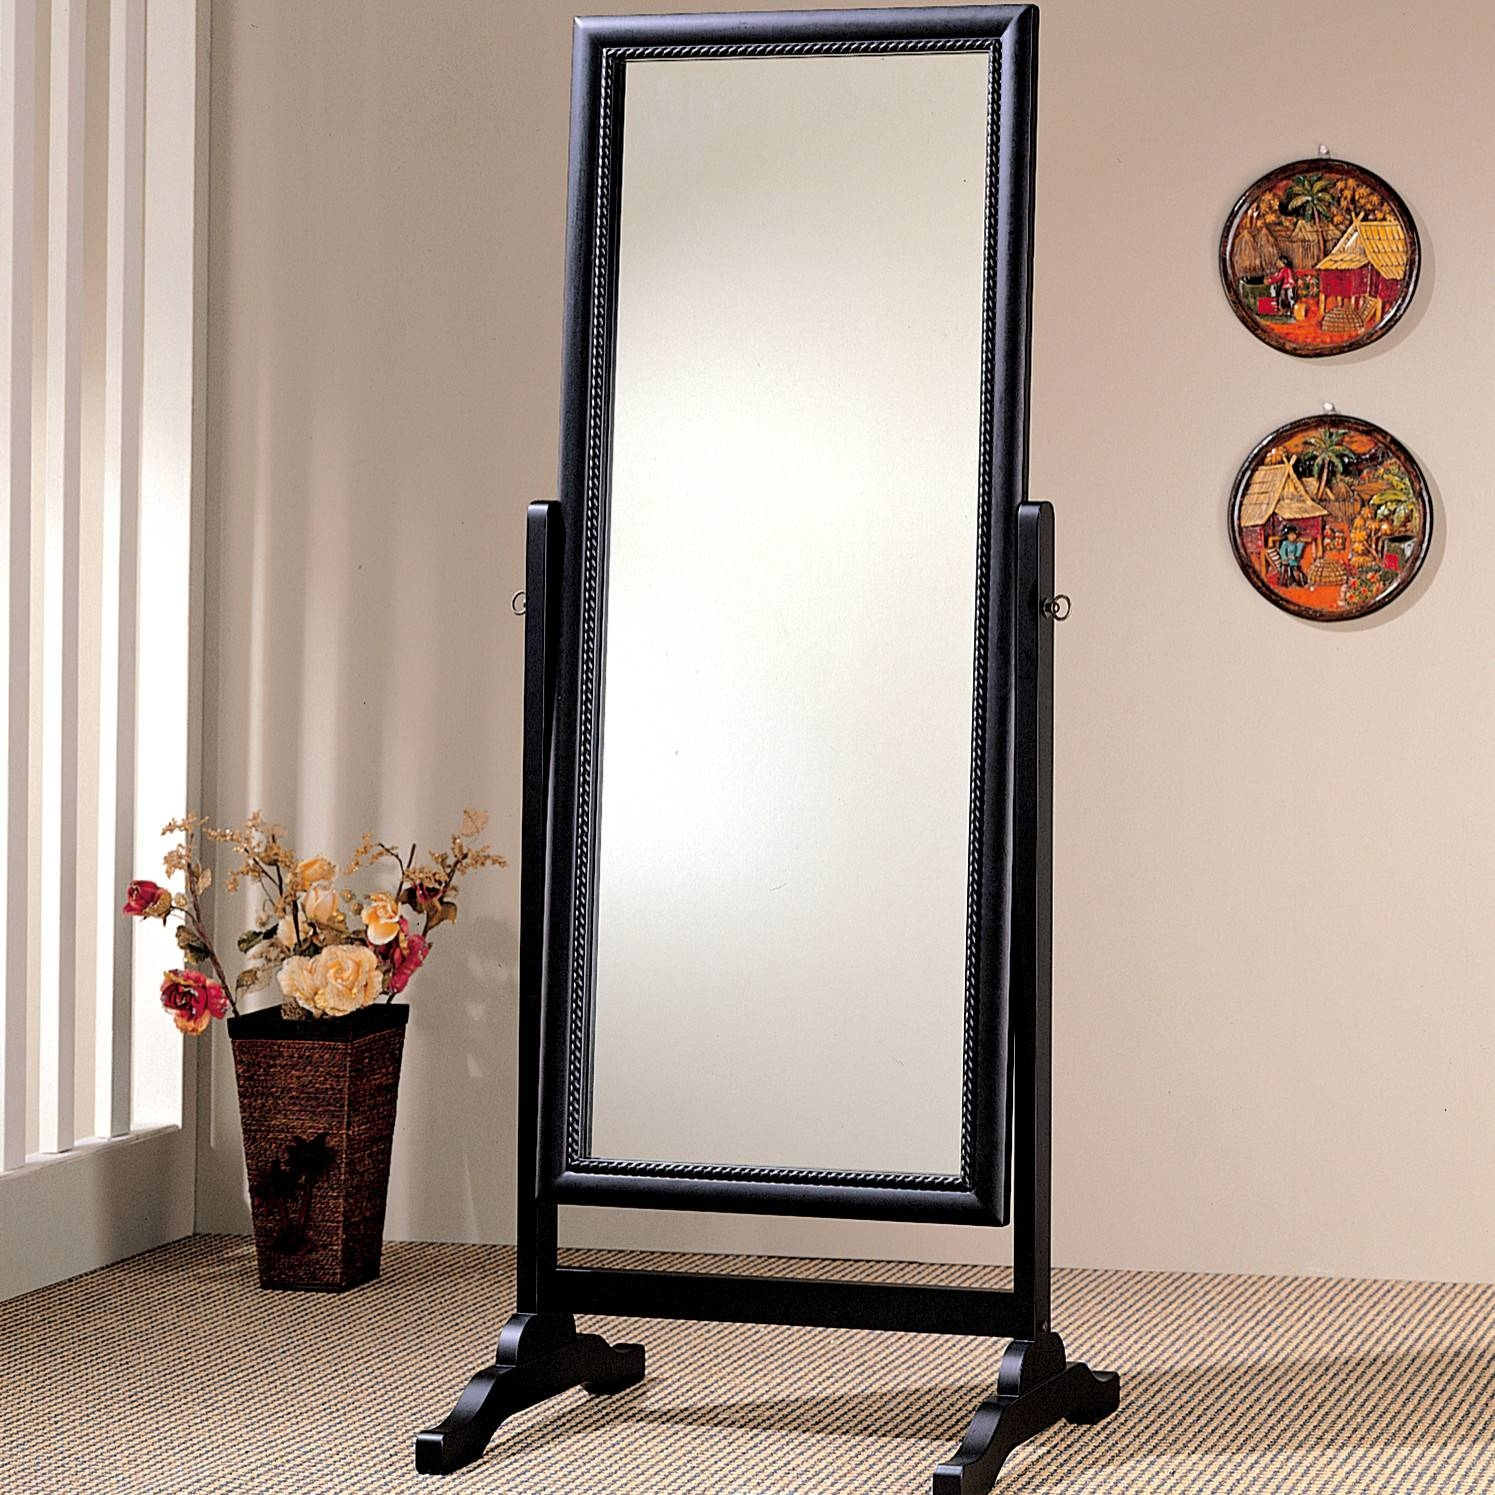 Homeware: Oval Full Length Standing Mirror | Large Floor Mirrors intended for Full Length Large Free Standing Mirrors (Image 10 of 15)